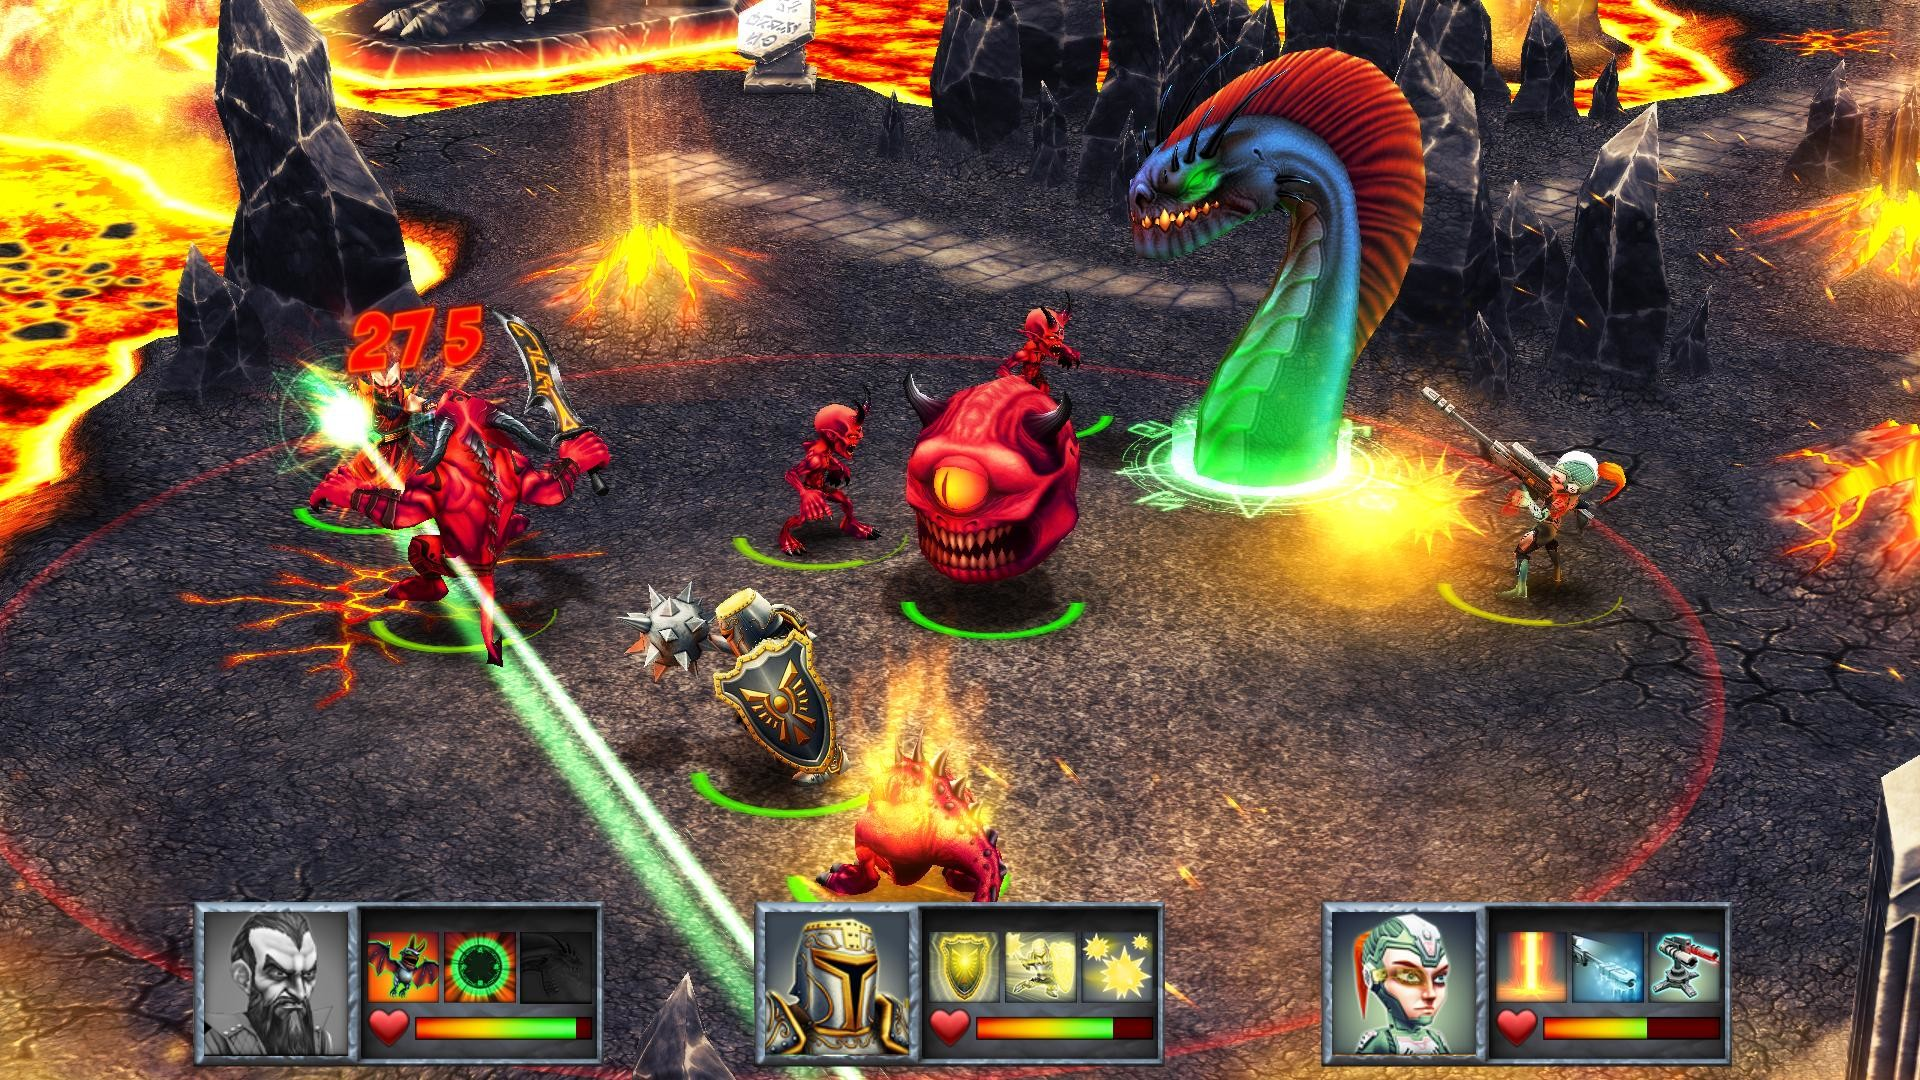 Battle Hunters Is Headed For Release On PC And Nintendo Switch This October, Explore A Classic RPG Experience